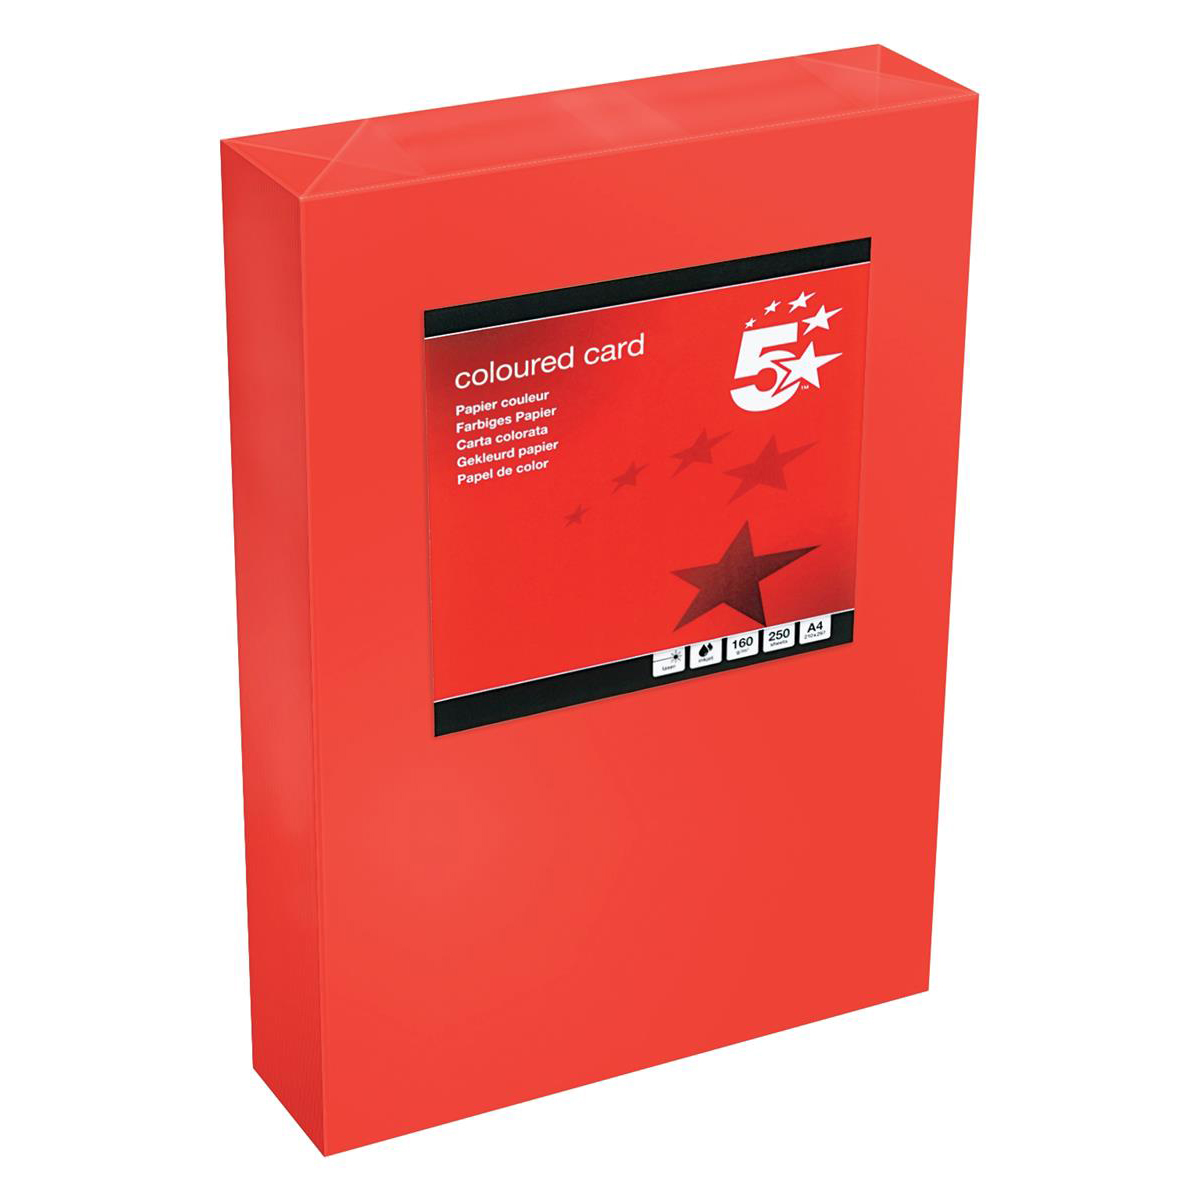 Card (160g+) 5 Star Office Coloured Card Tinted 160gsm A4 Deep Red Pack 250